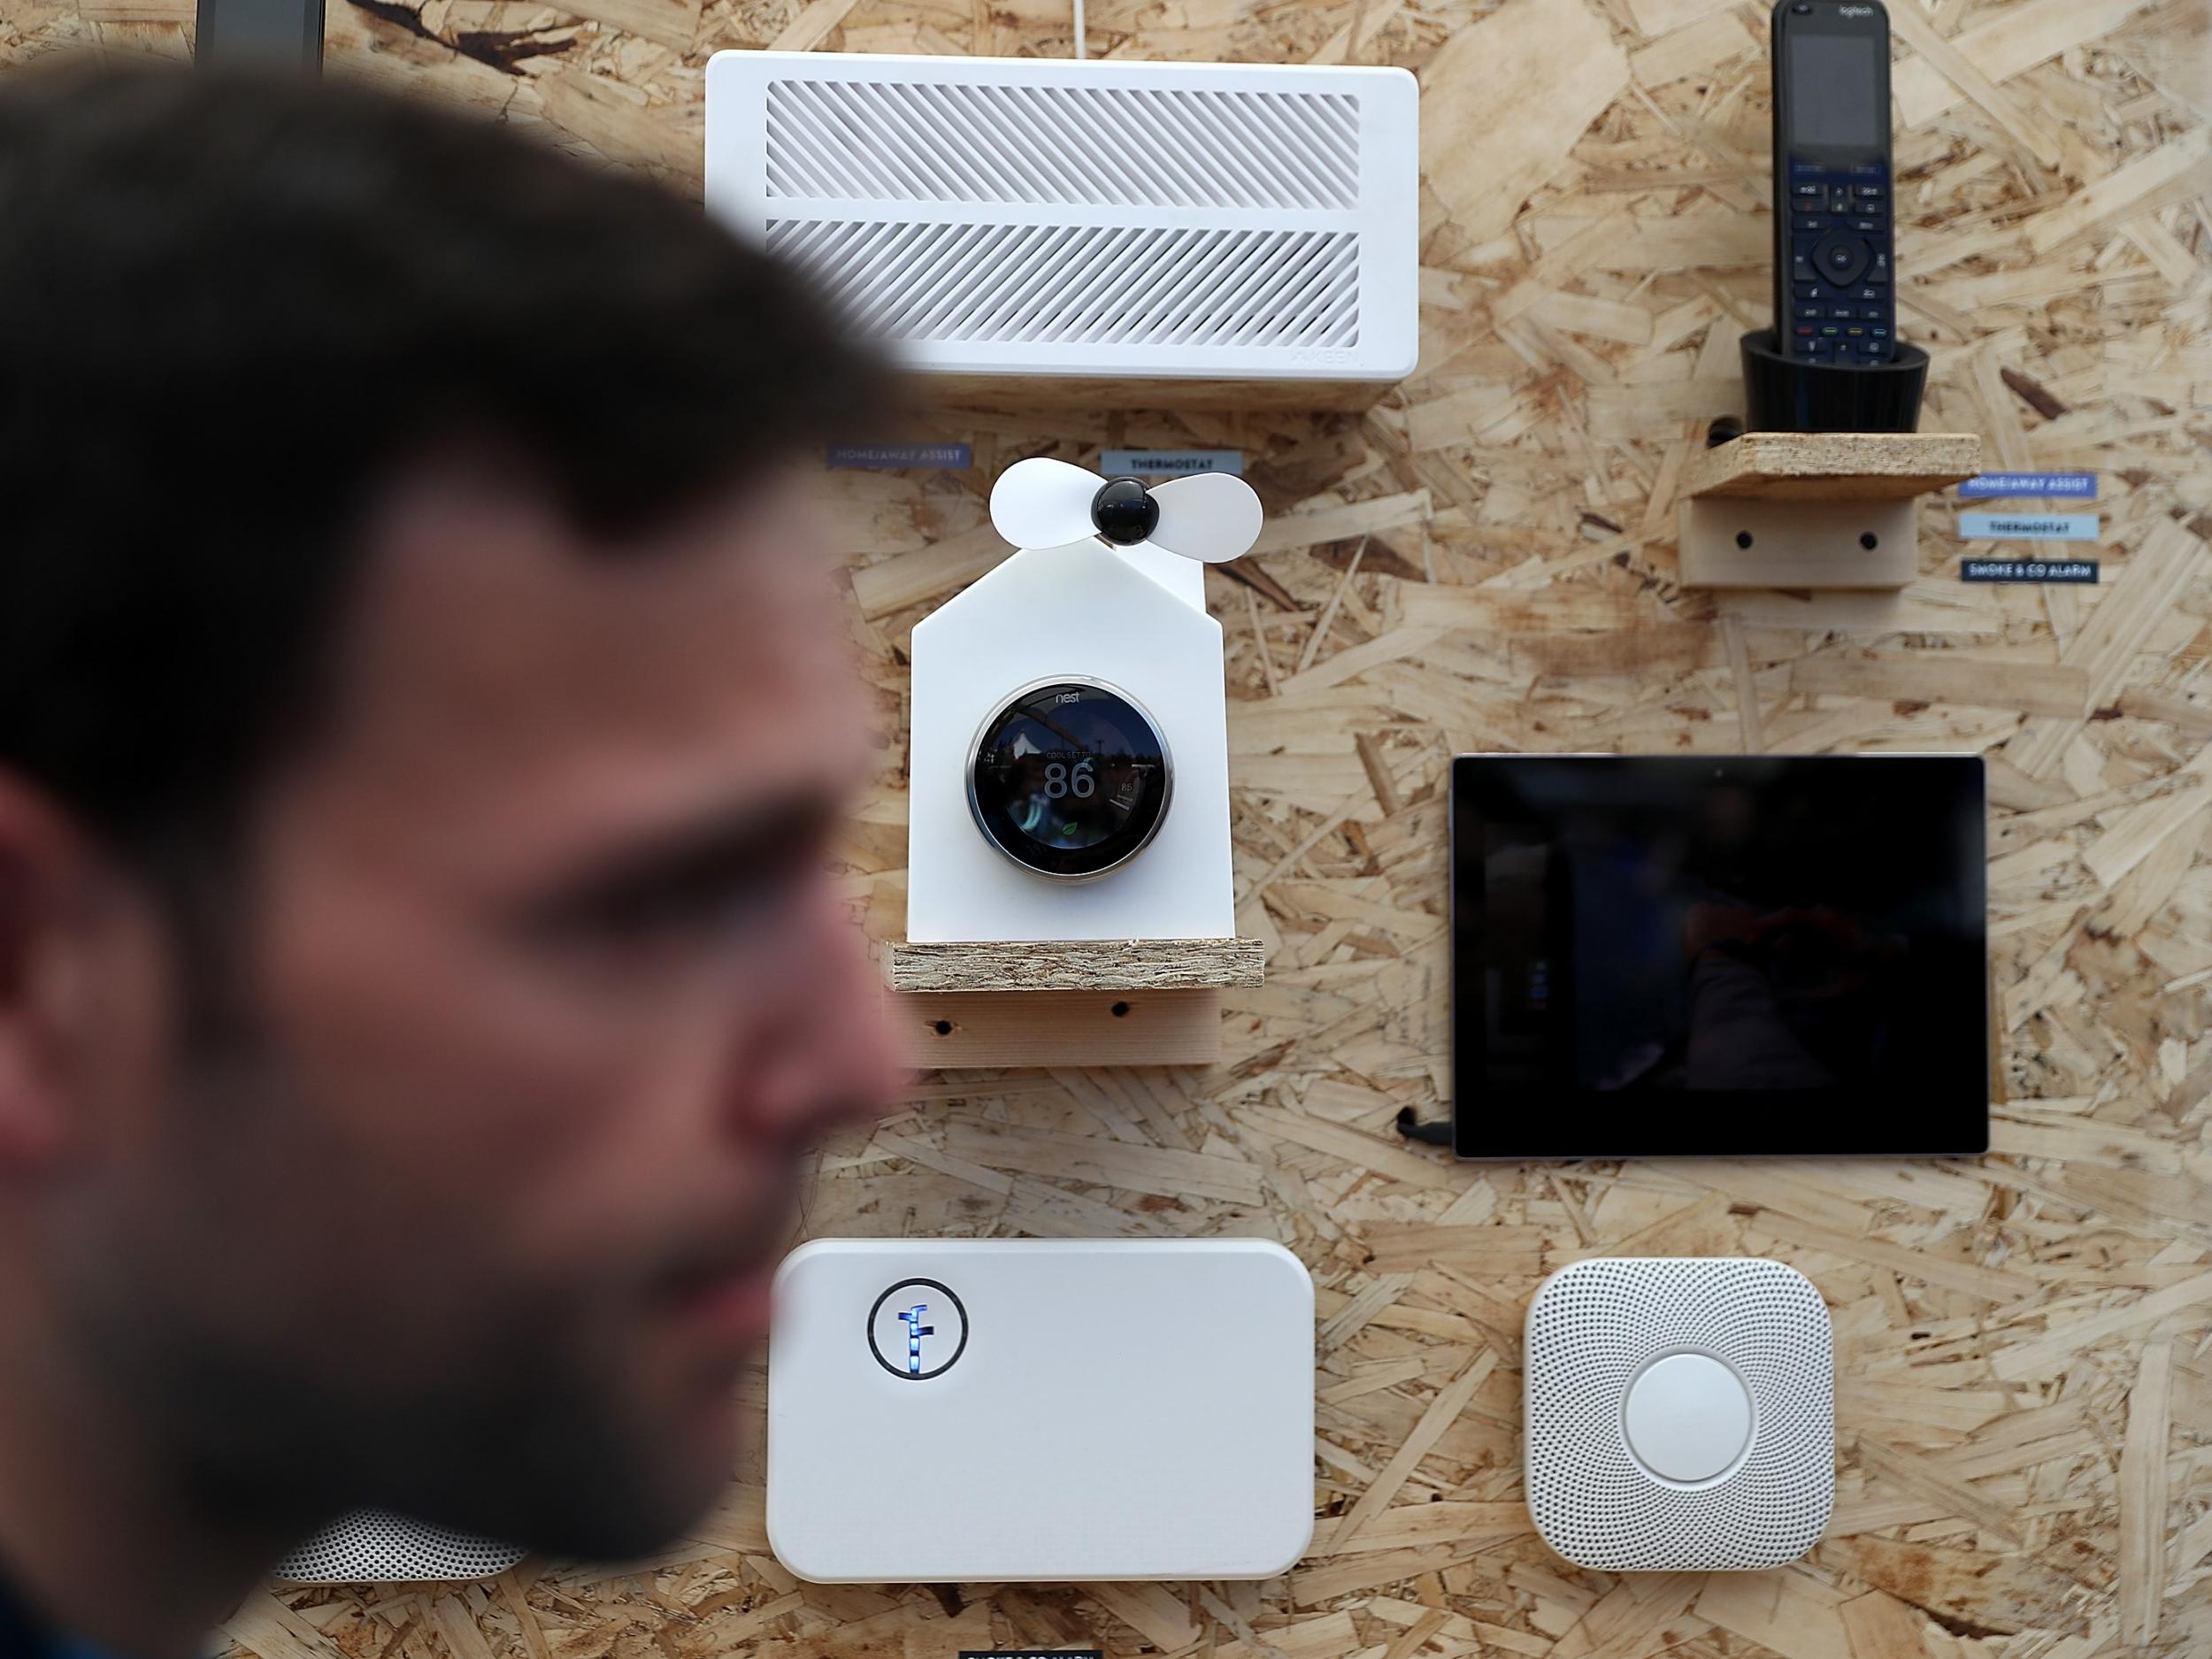 Google Nest executive predicts 'ambient computing is next great technology transition'